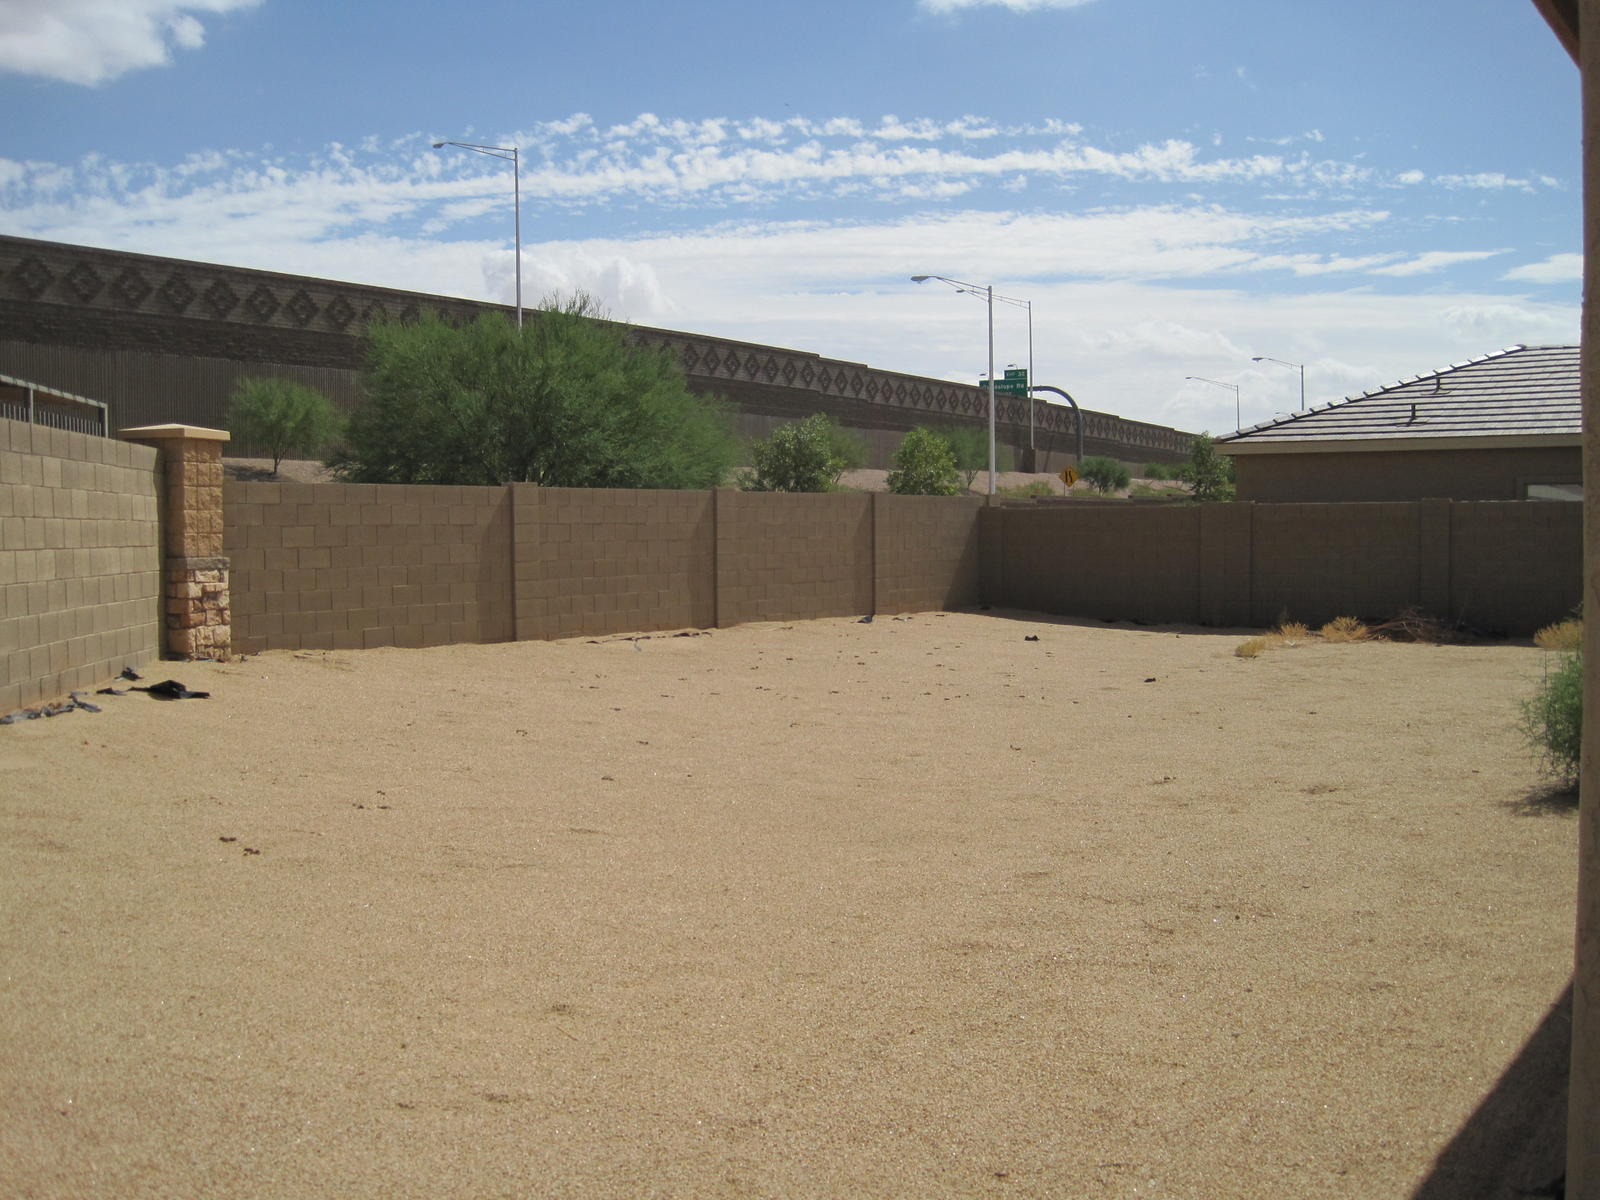 img_0463.jpg Whats would be the cheapest way to landscape this  yard?-img_0464.jpg